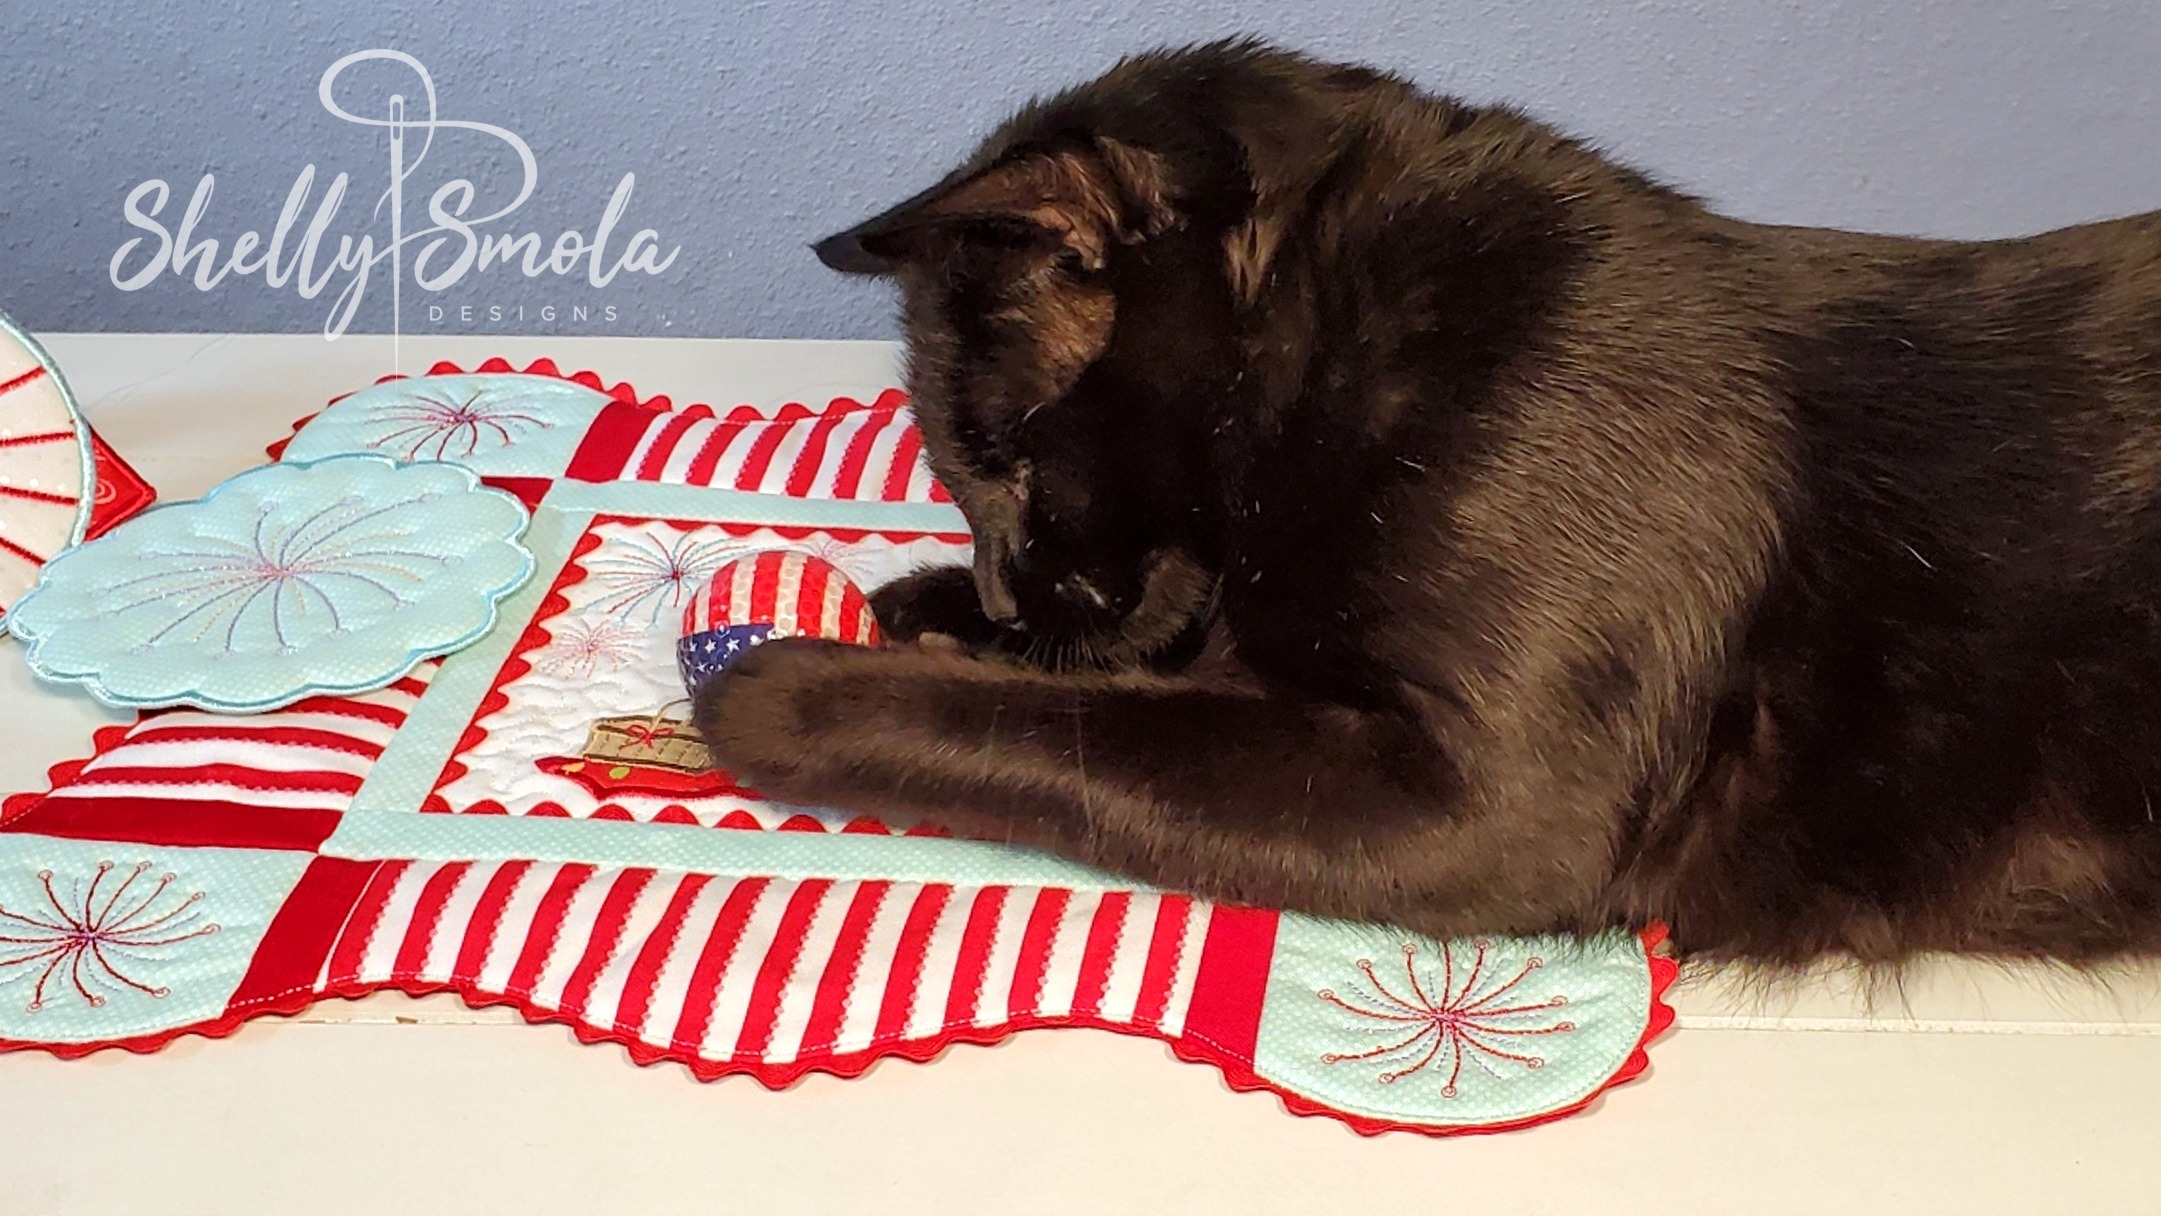 4th of July Placemat with Spooky the Cat by Shelly Smola Designs